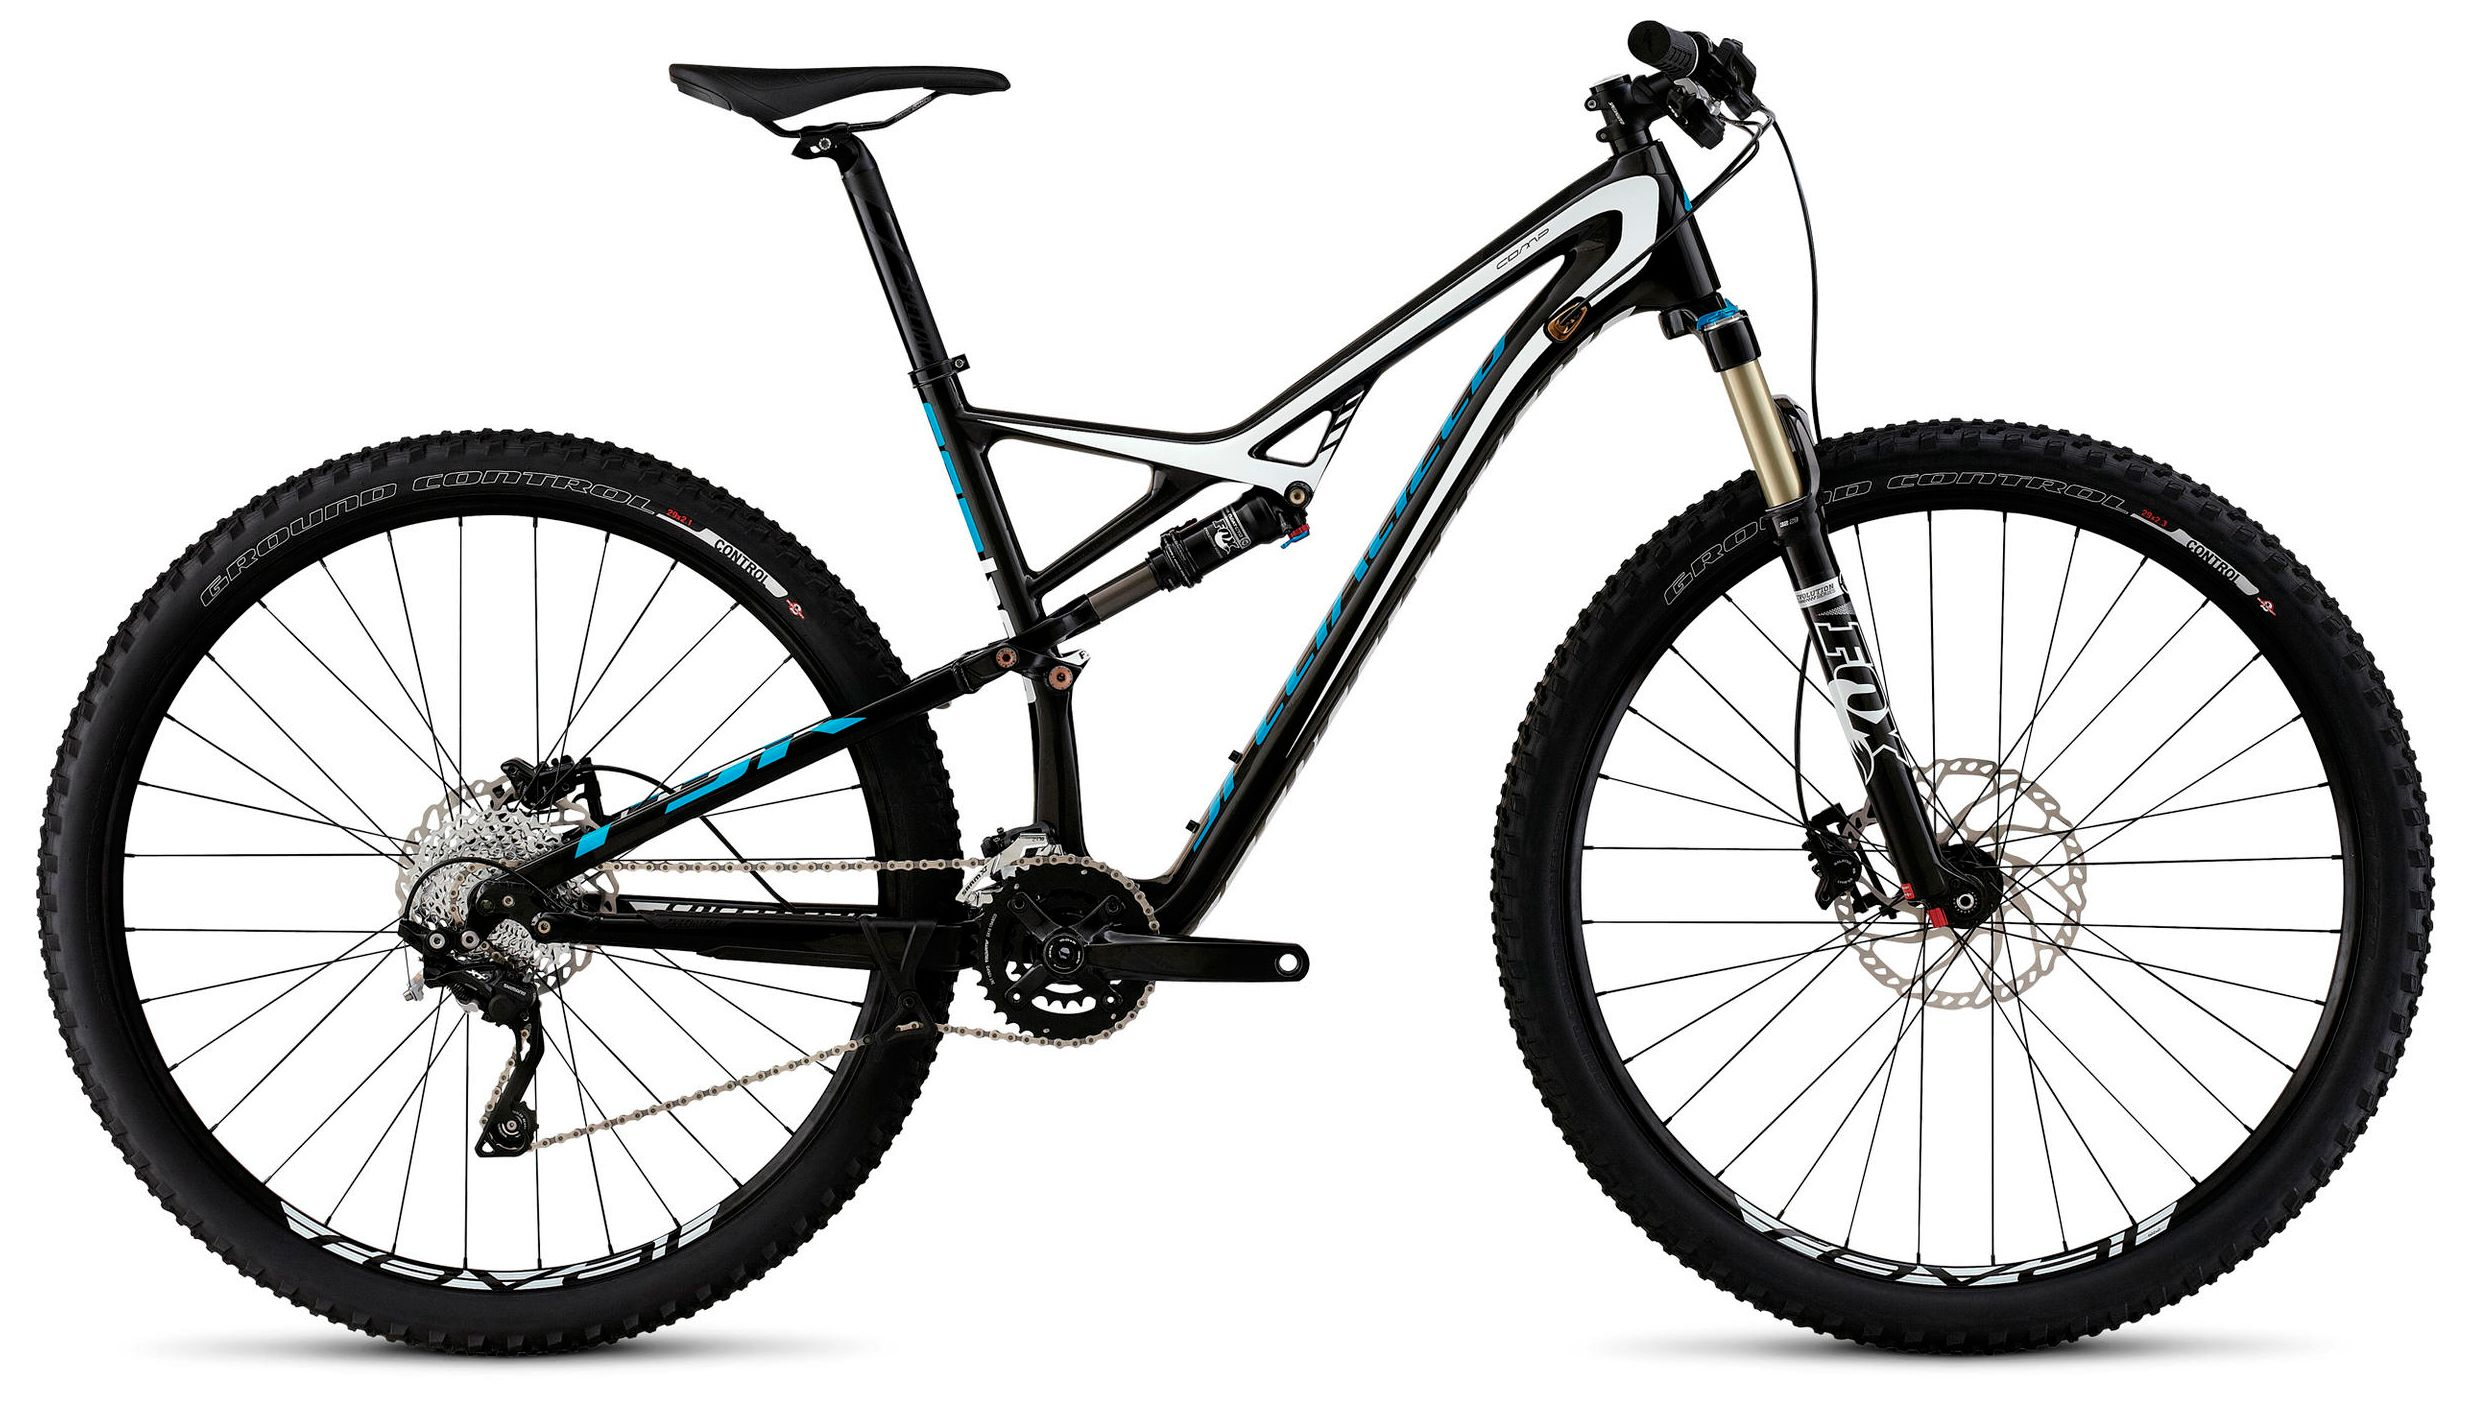 Велосипед Specialized Camber Comp Carbon 29 2016 велосипед specialized ruby sport 2016